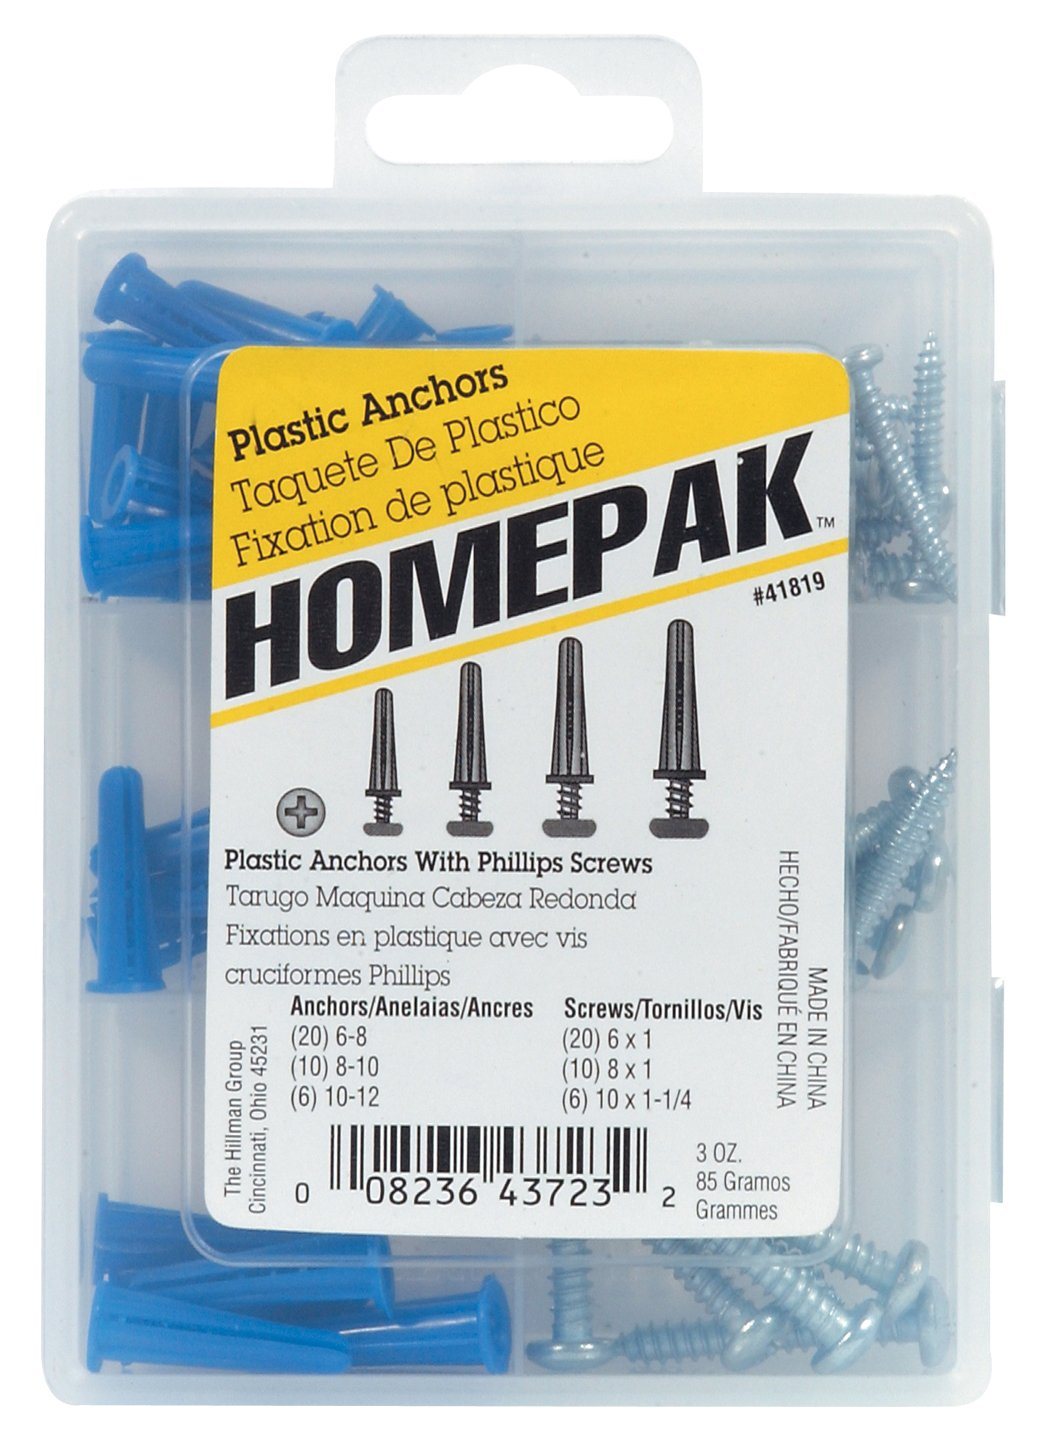 HOMEPAK 41819 Plastic Anchors with Screws The Hillman Group